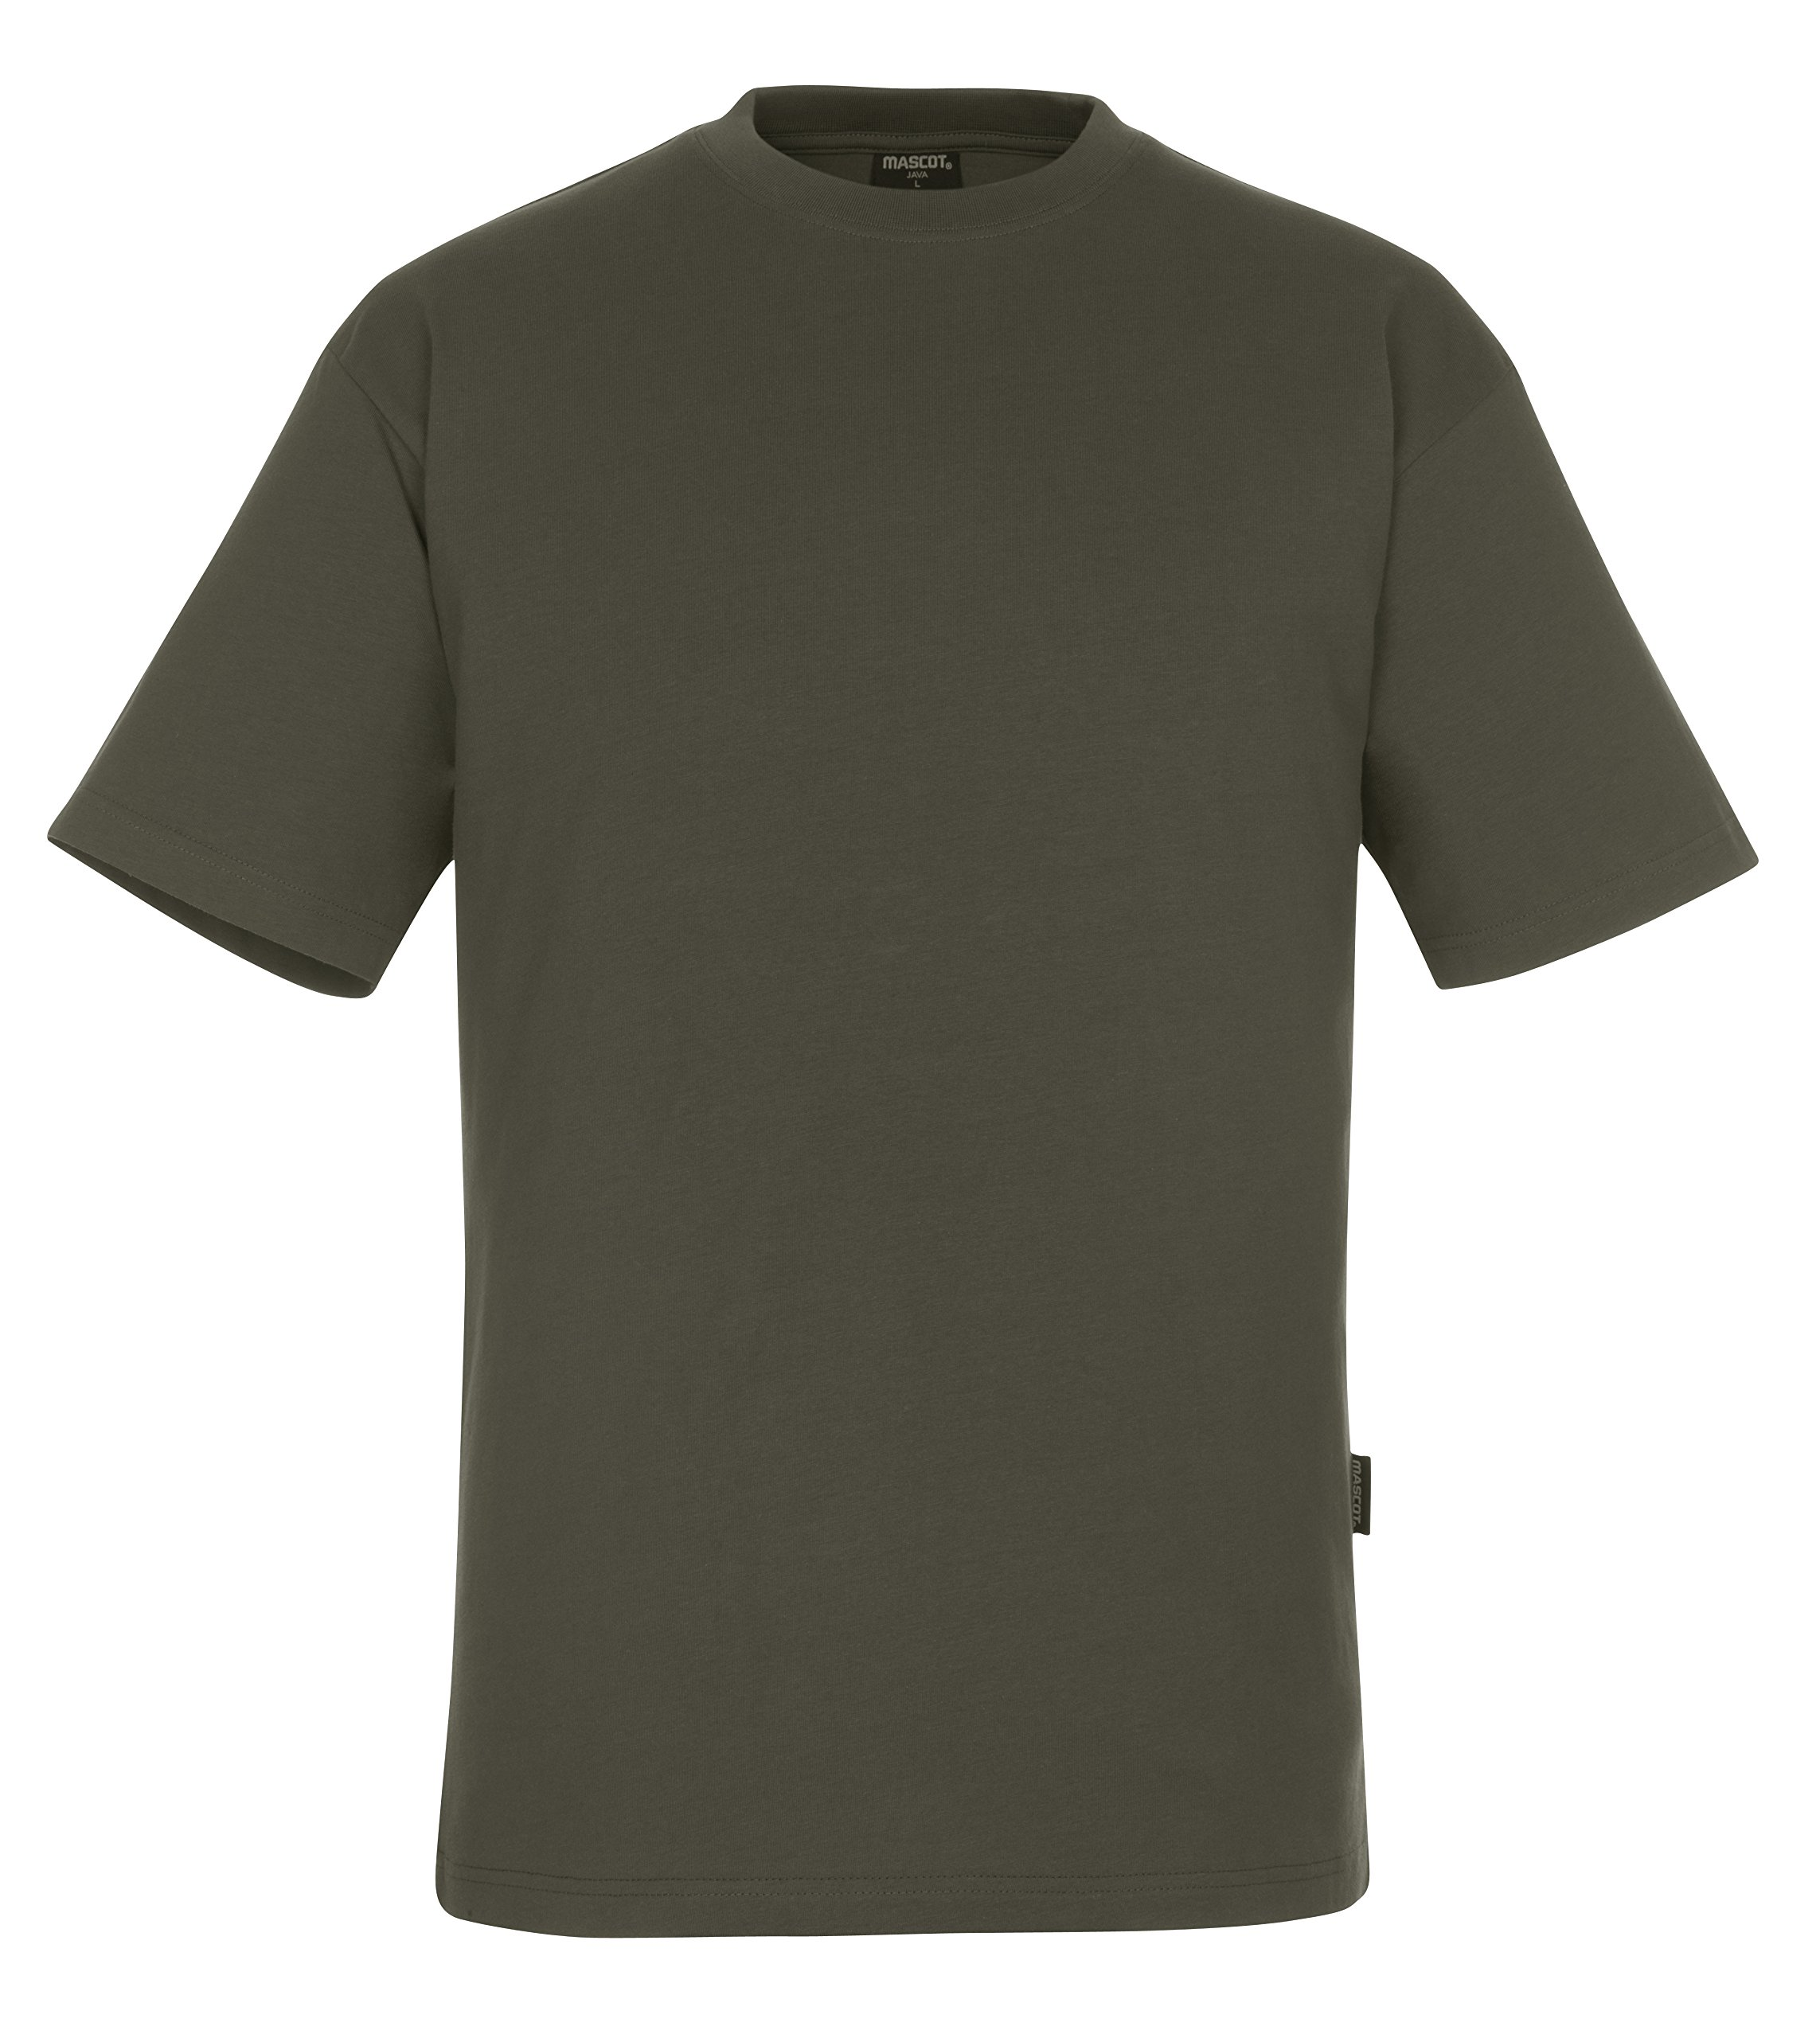 Mascot 00782-250-19-XL ONE''Java'' T-shirt, Dark Olive, X-Large by Mascot (Image #1)